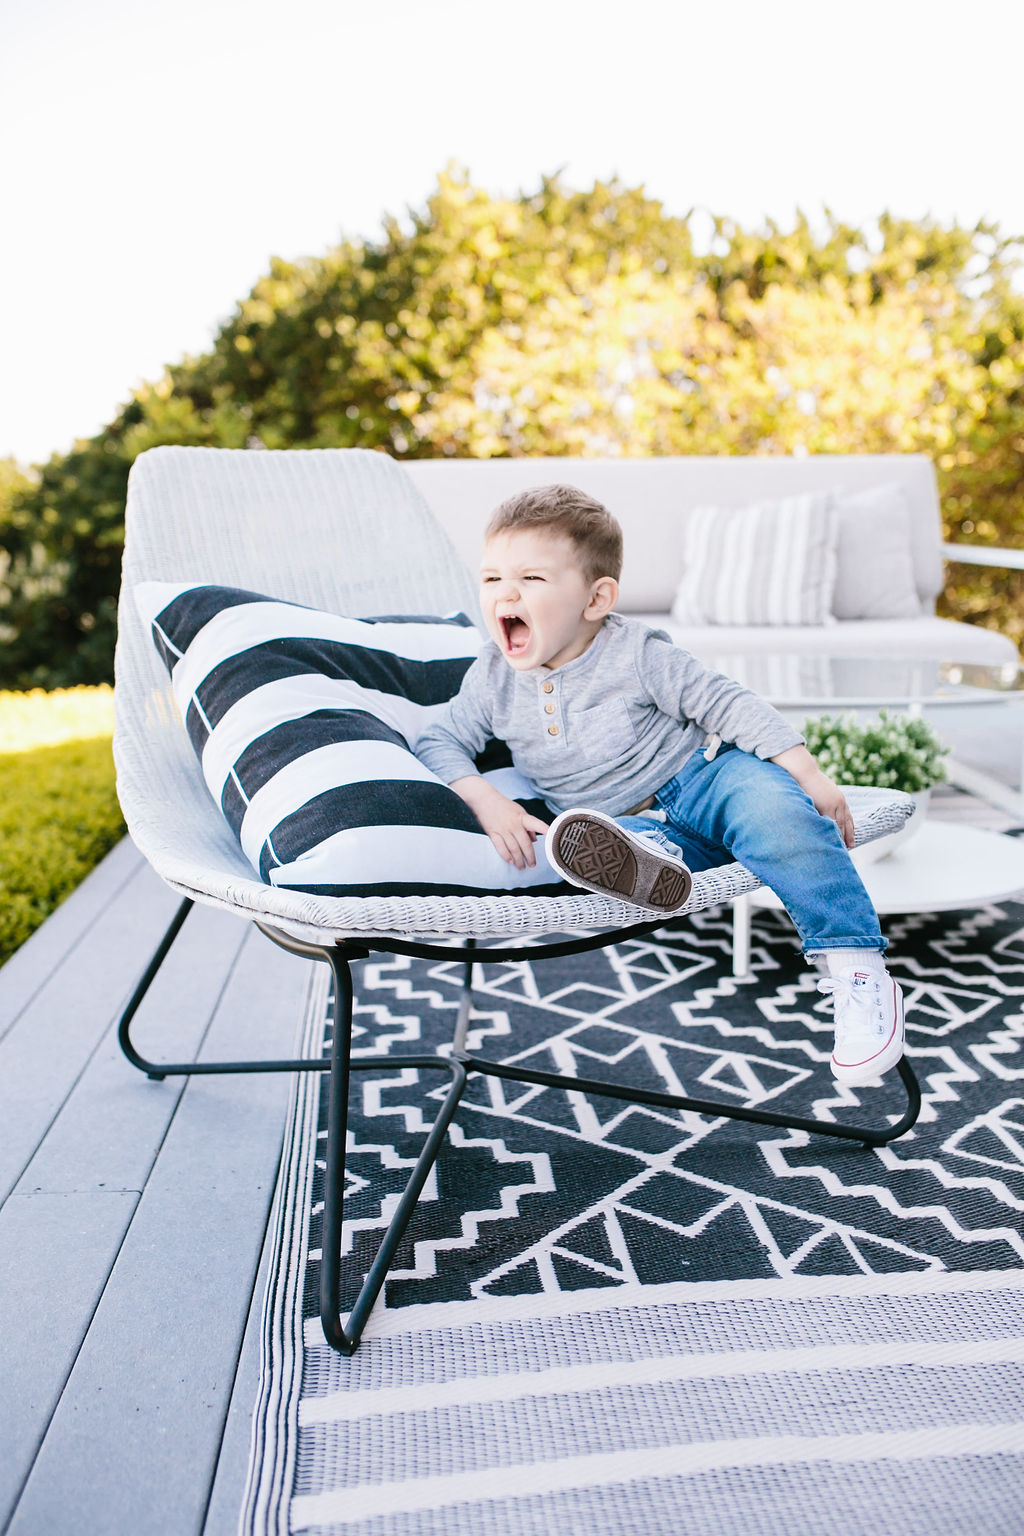 Toddler seated on a chair in an outdoor living space.